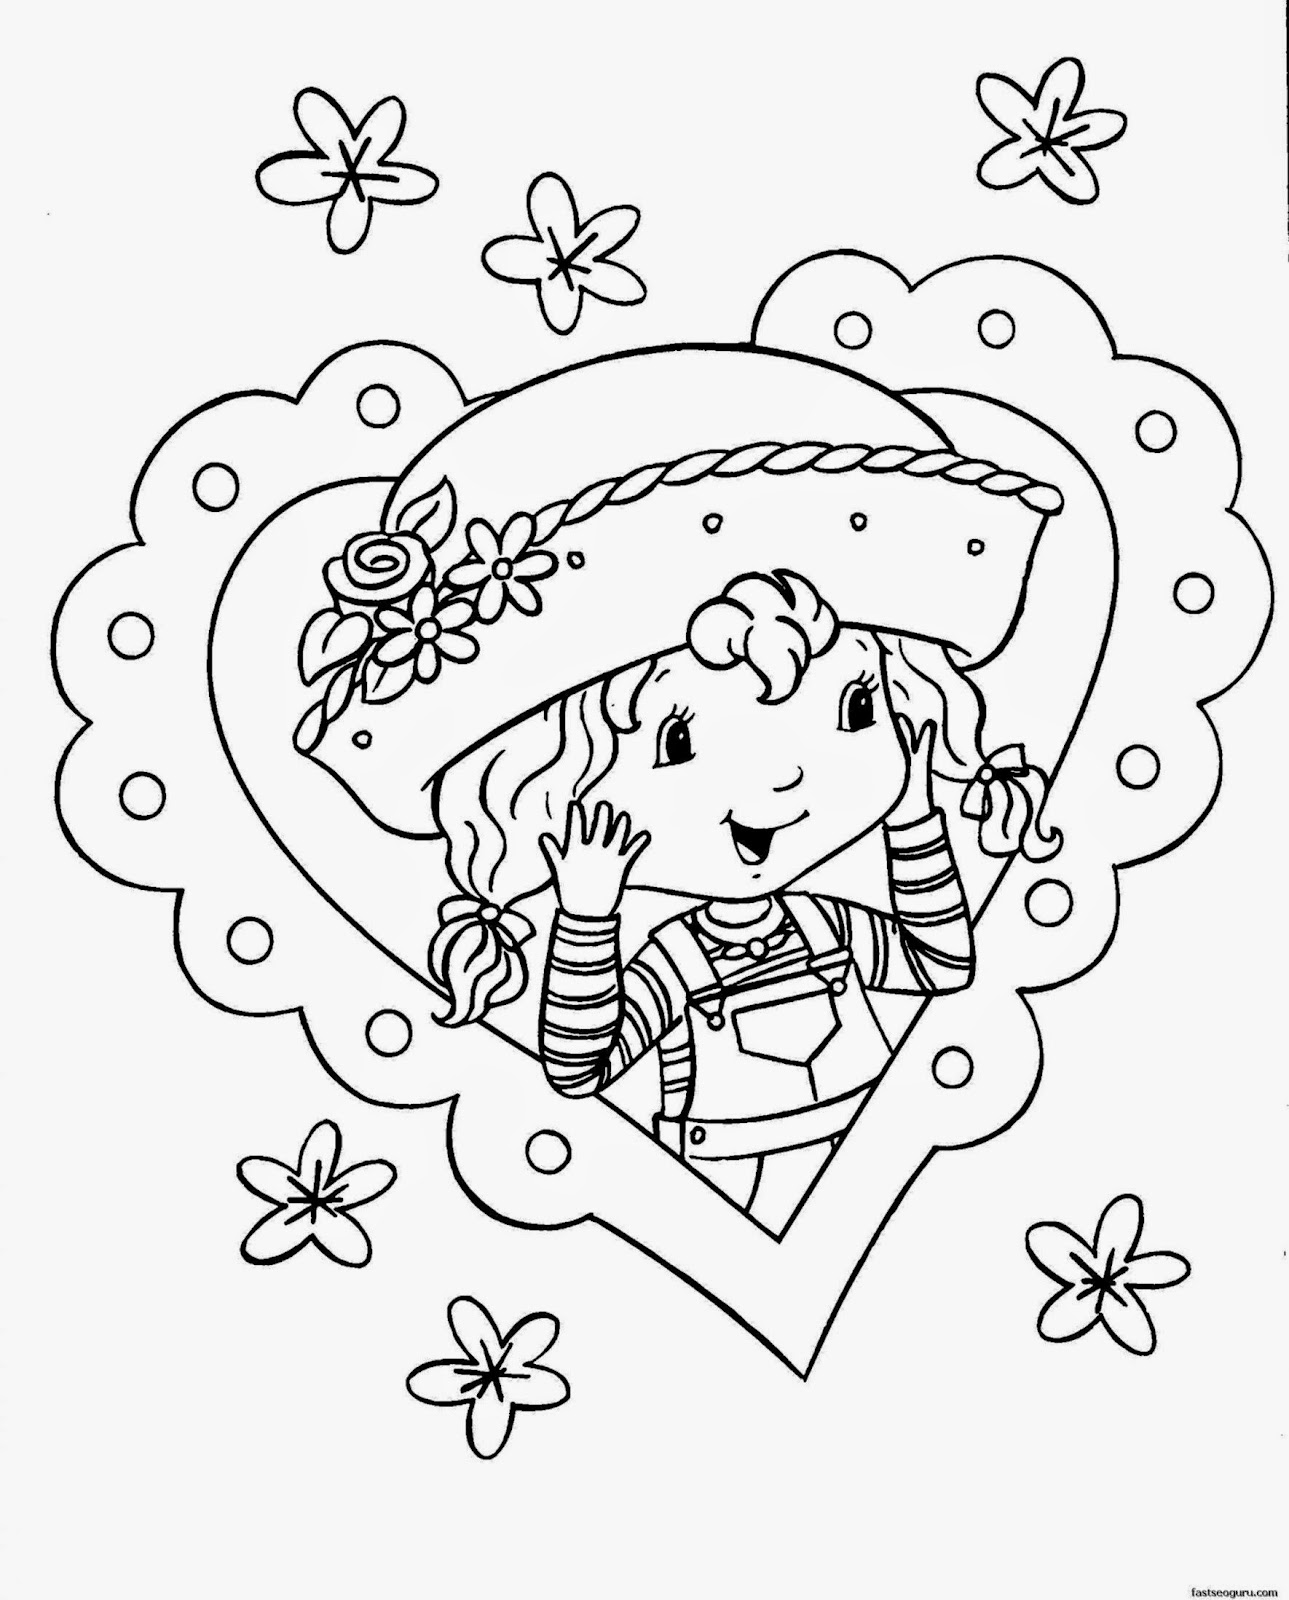 printable coloring pages for girls  Coloringpages4kid